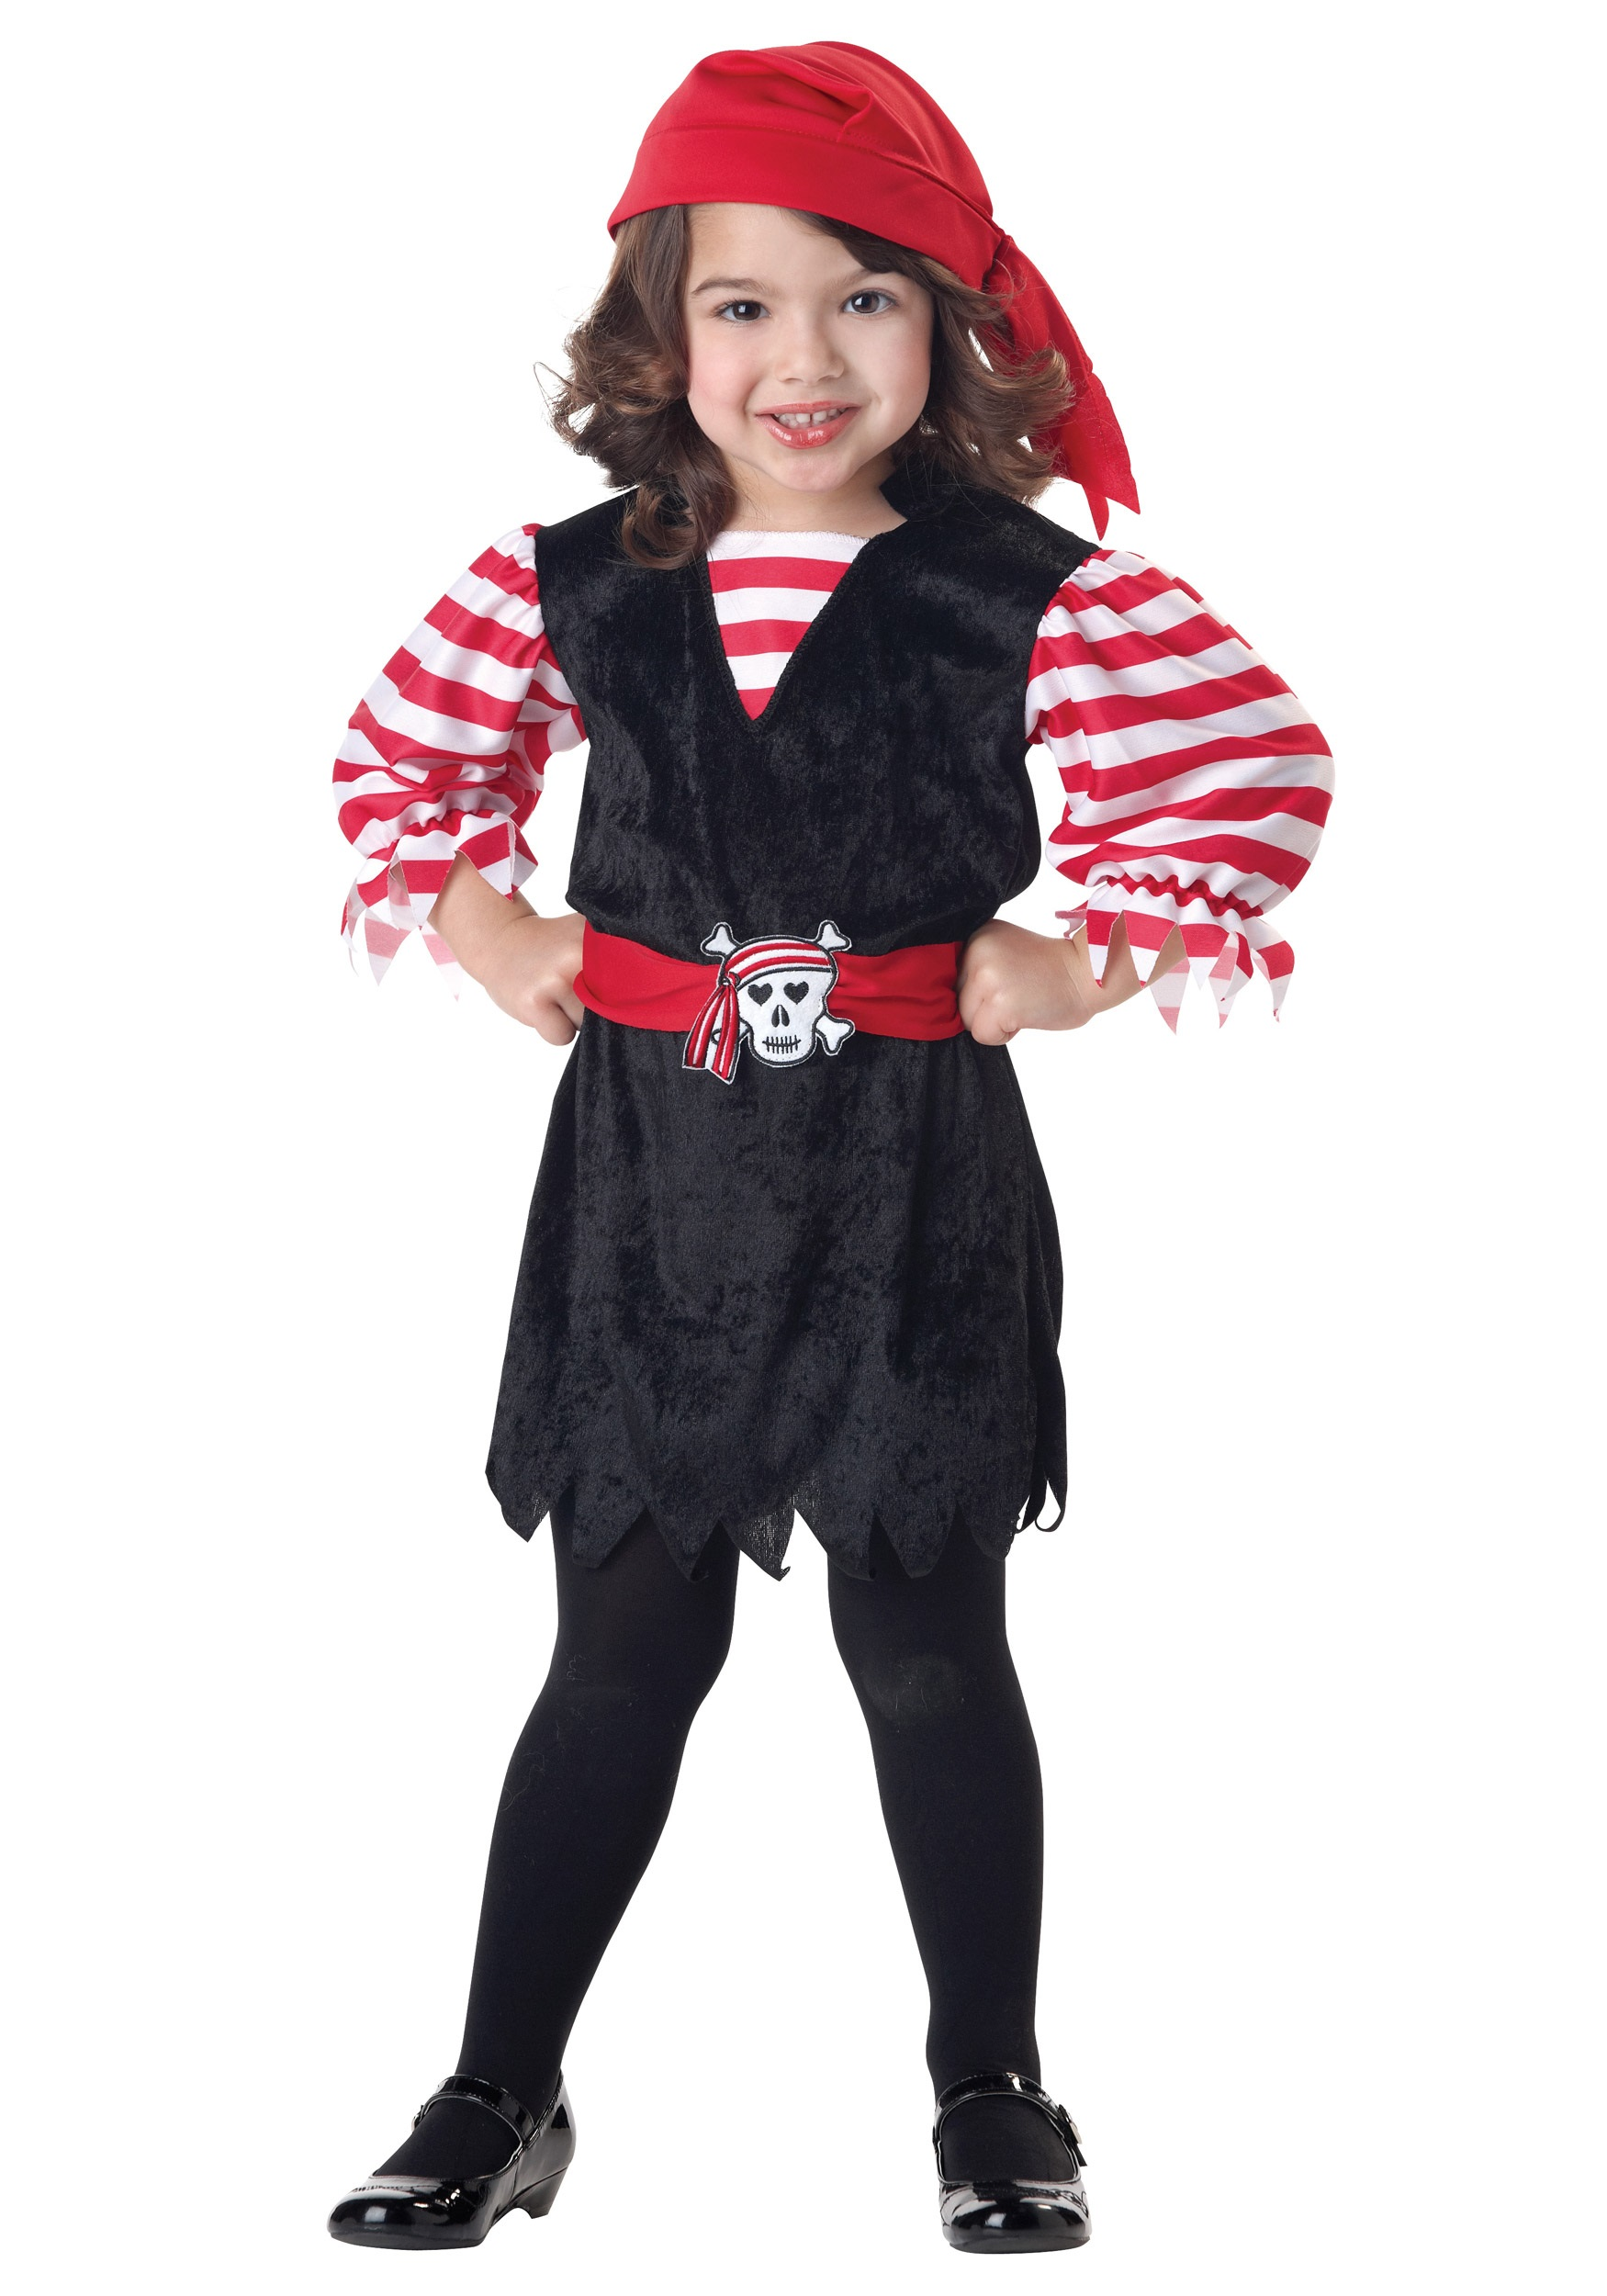 Toddler Pirate Cutie Costume  sc 1 st  Halloween Costumes & Toddler Pirate Cutie Costume - Halloween Costumes